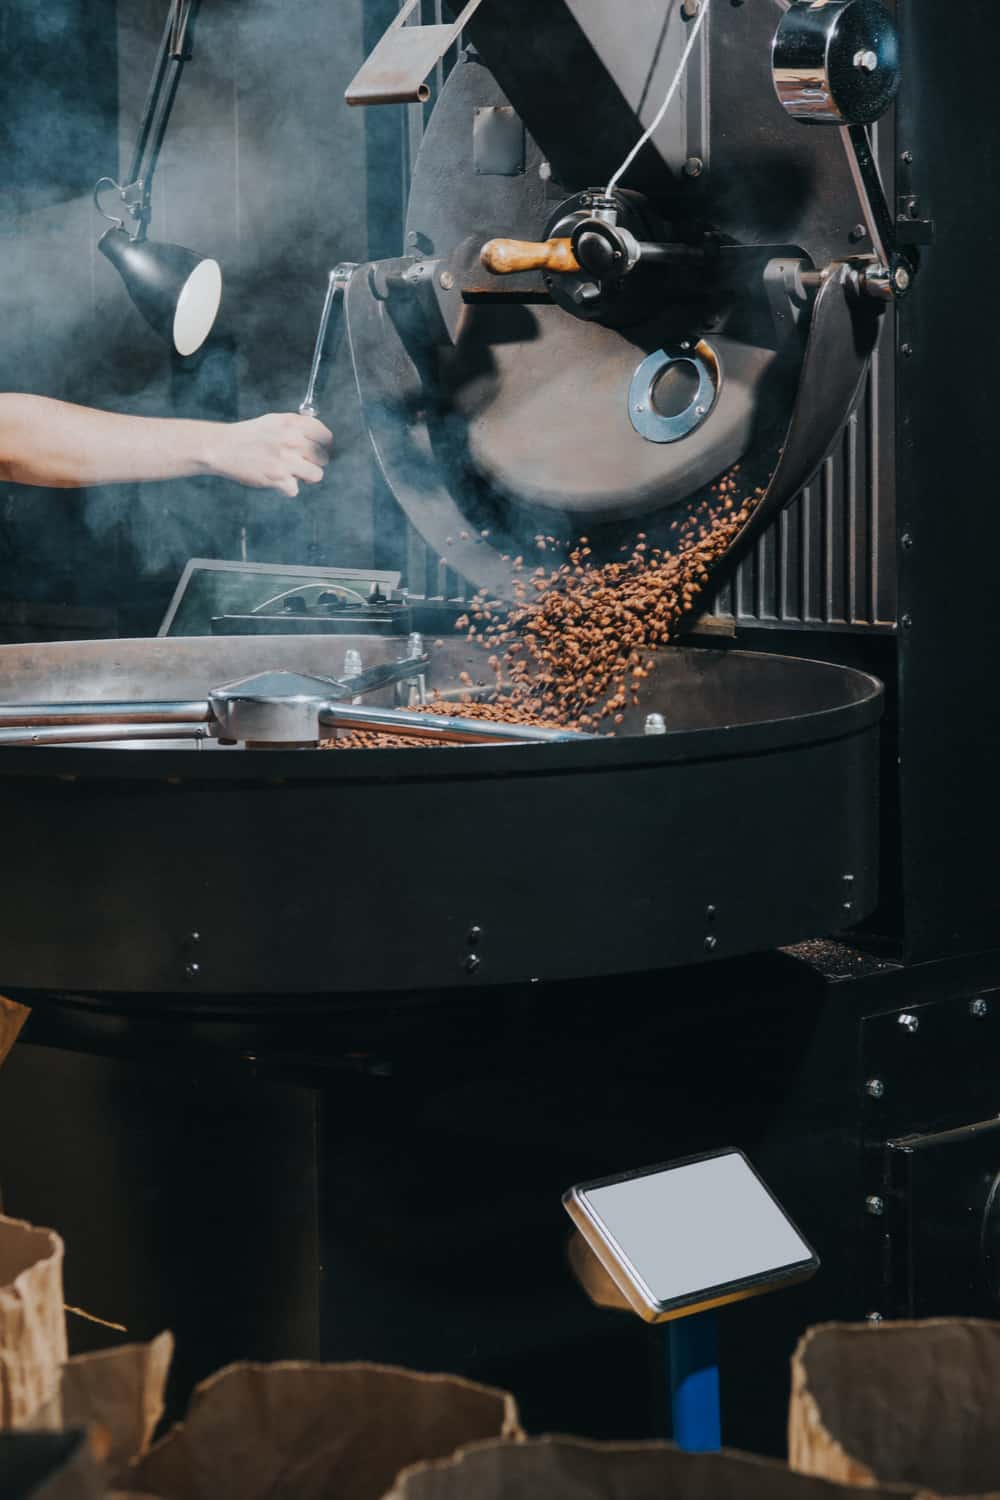 Roasting brings out the flavor of the coffee bean – but also kills it